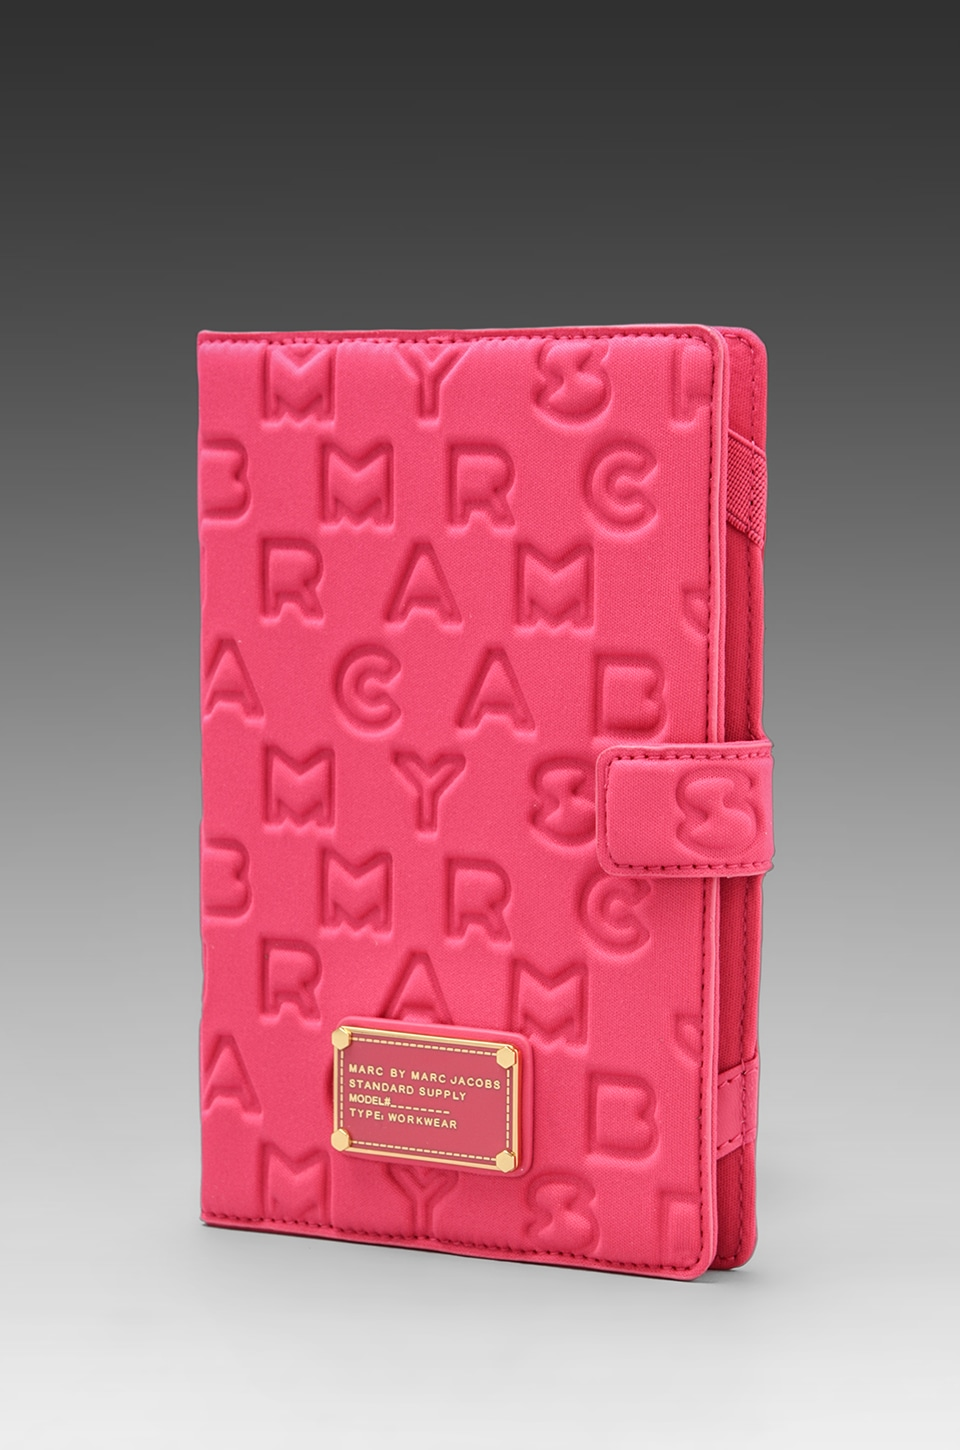 Marc by Marc Jacobs Dreamy Logo Neoprene eReader Book in Peony